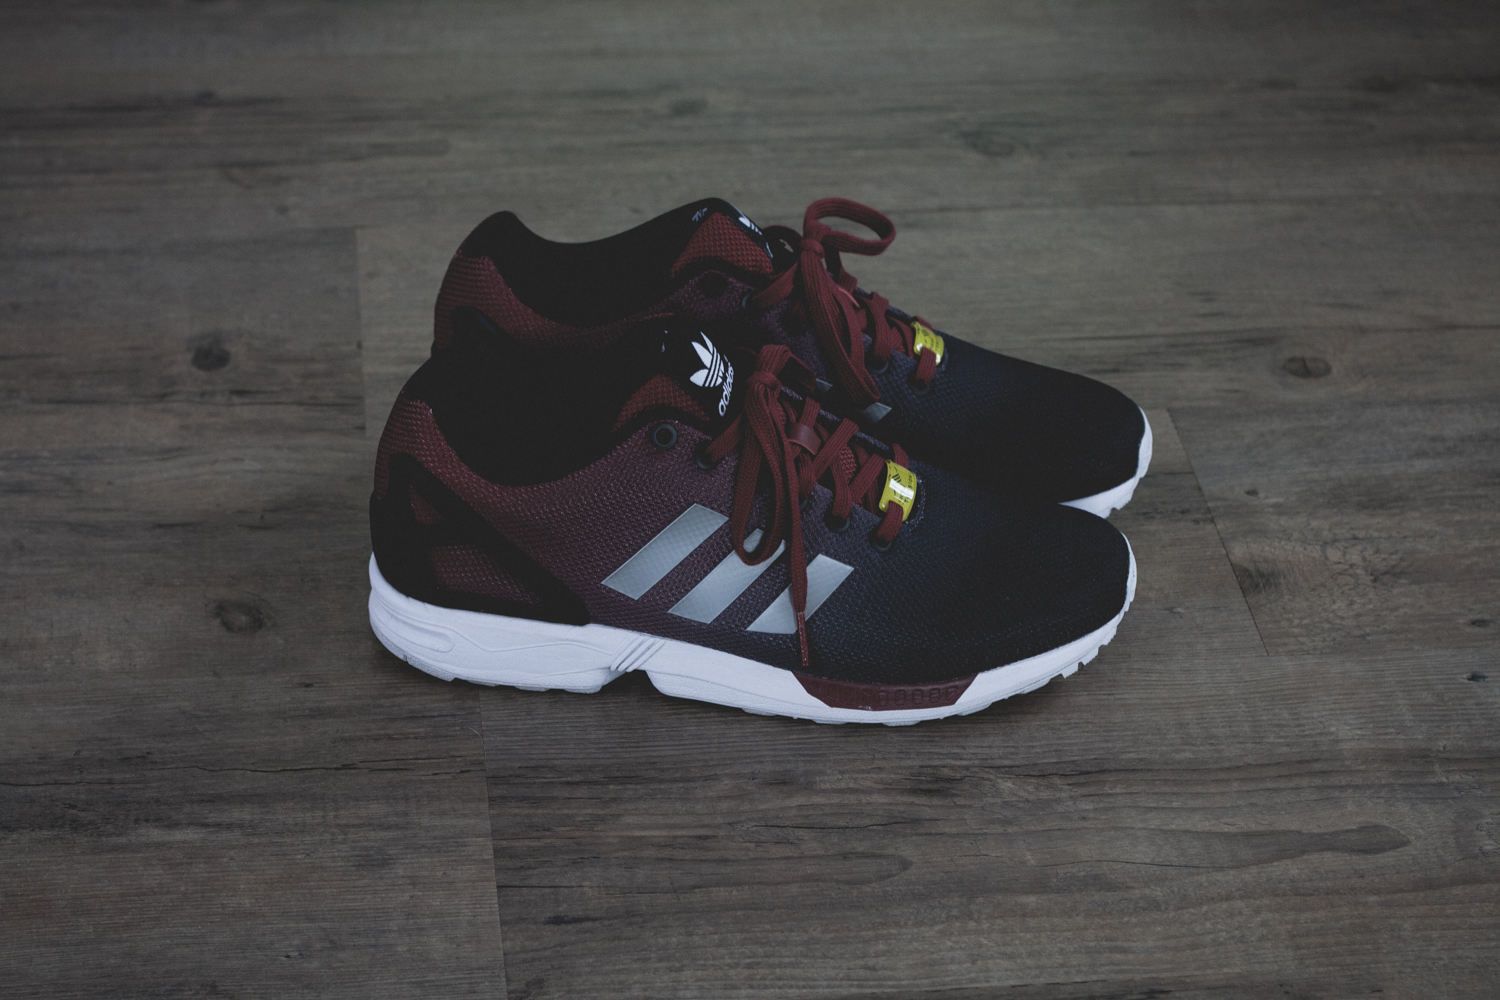 adidas ZX FLUX Fading Reflective Pack Review 1